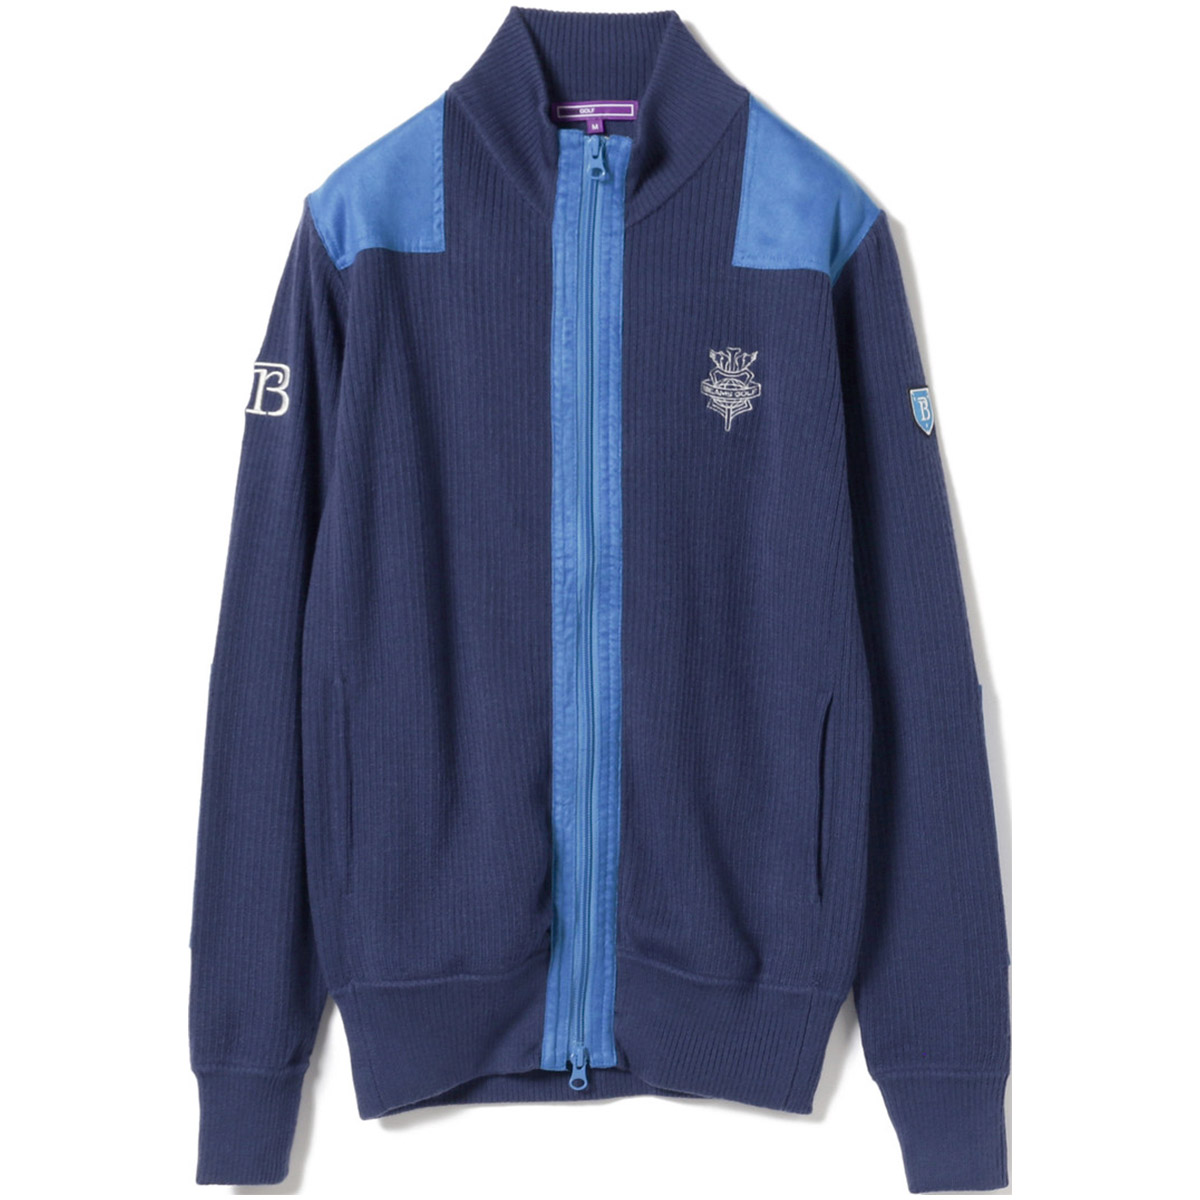 BEAMS GOLF PURPLE LABEL RETURN BRITISH フルジップ ニット ブルゾン